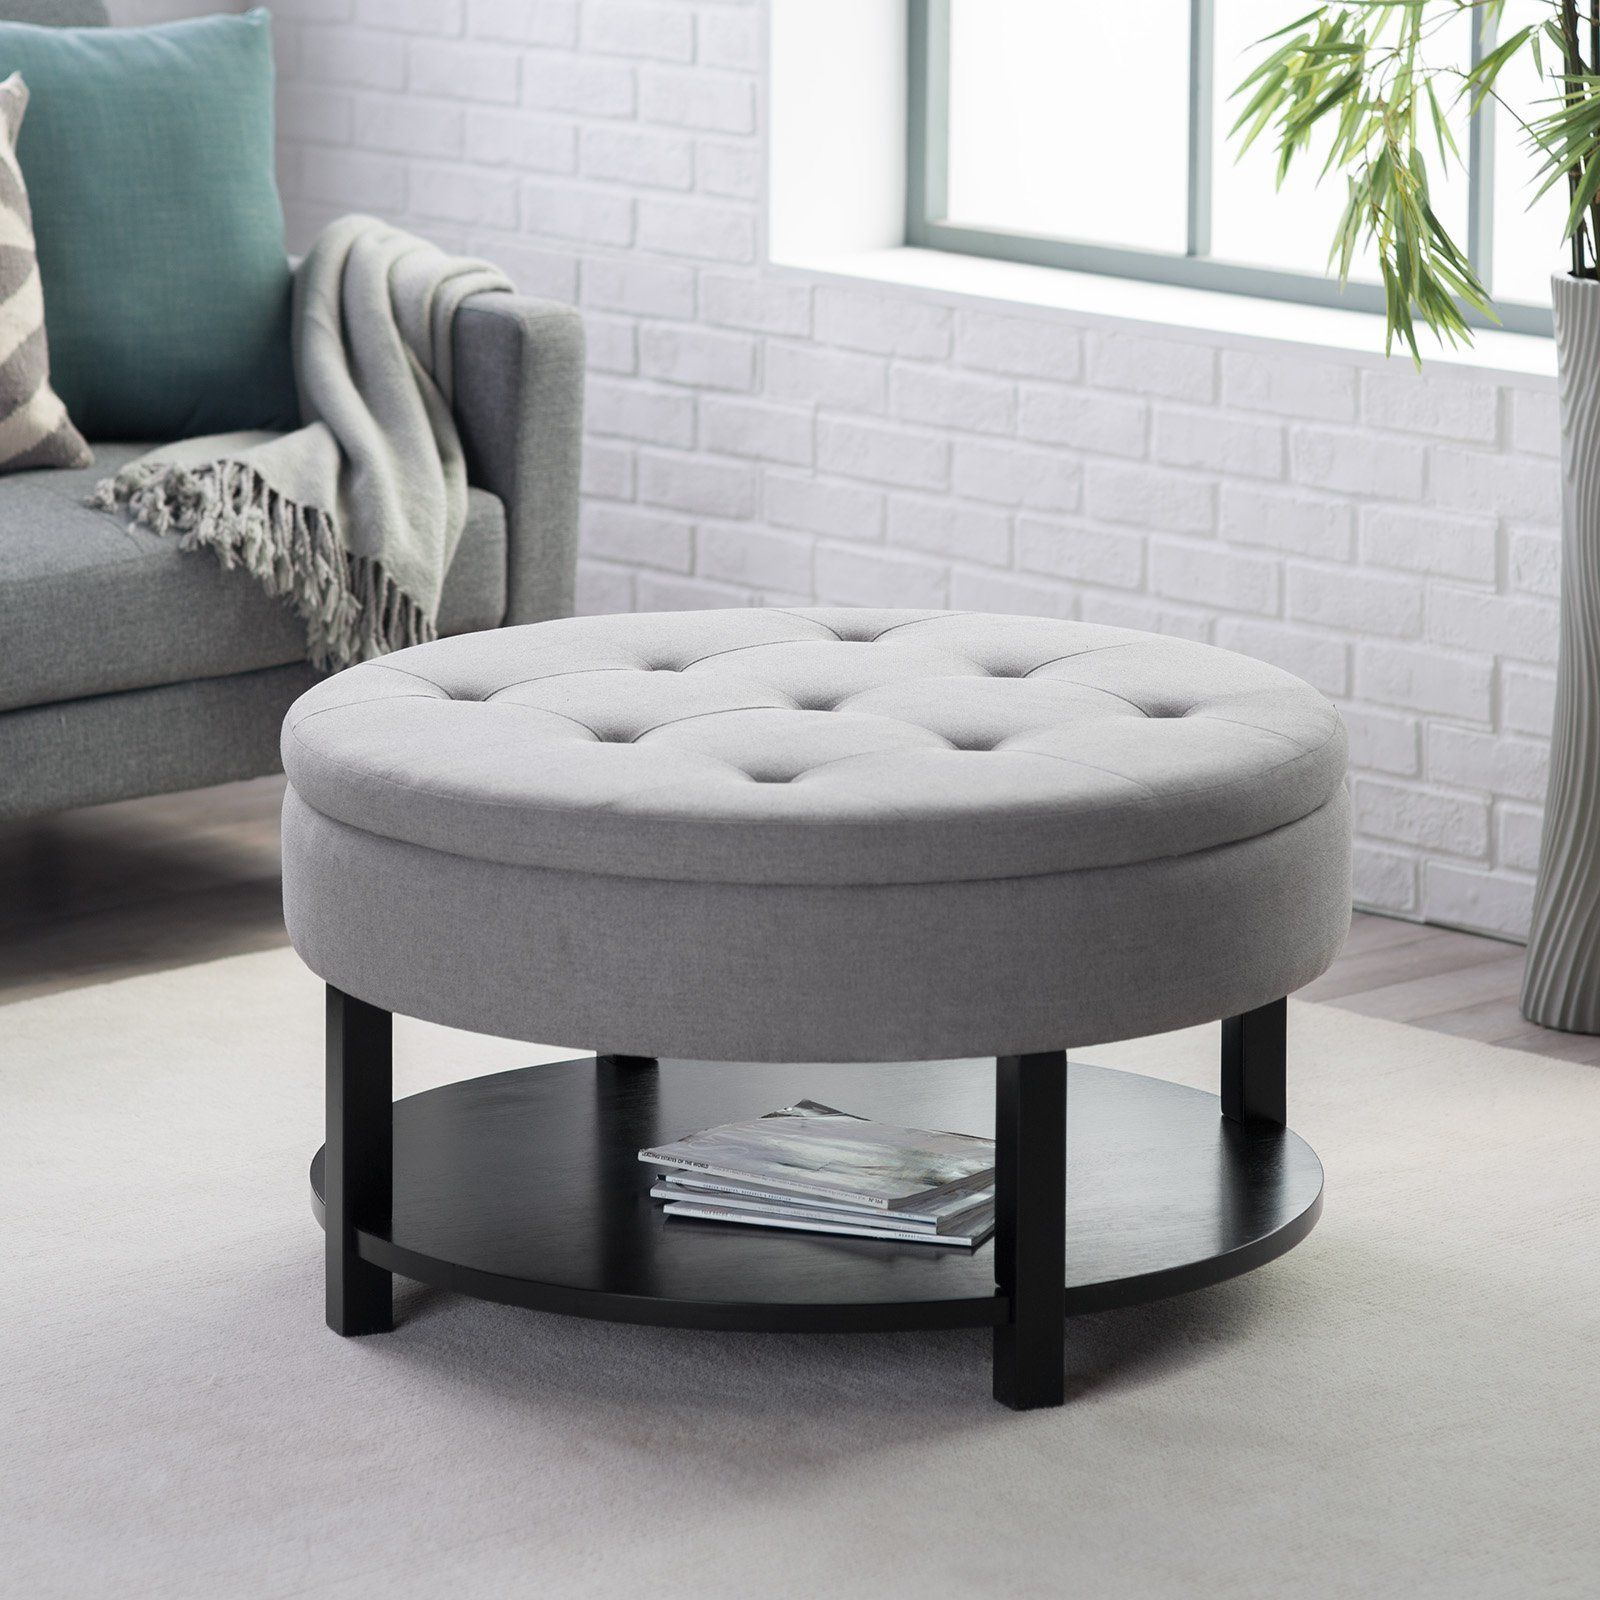 Round Ottoman Coffee Table with Storage Living Room Table Set